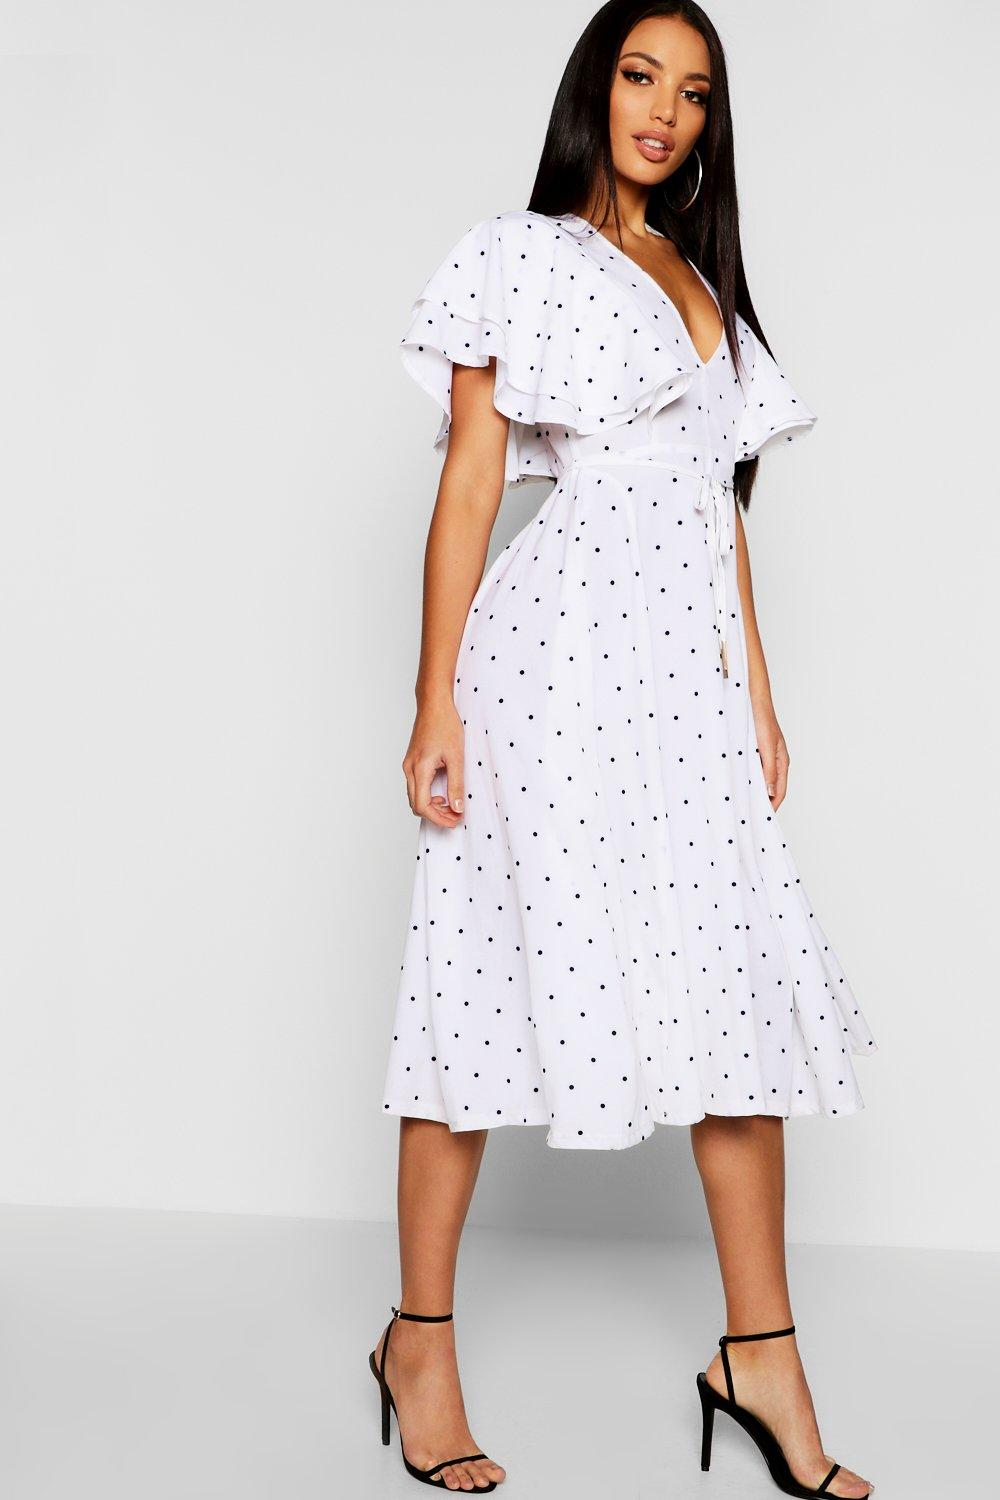 500 Vintage Style Dresses for Sale | Vintage Inspired Dresses Womens Mini Polka Dot Ruffle Angel Sleeve Midi Dress - white - 12 $20.00 AT vintagedancer.com